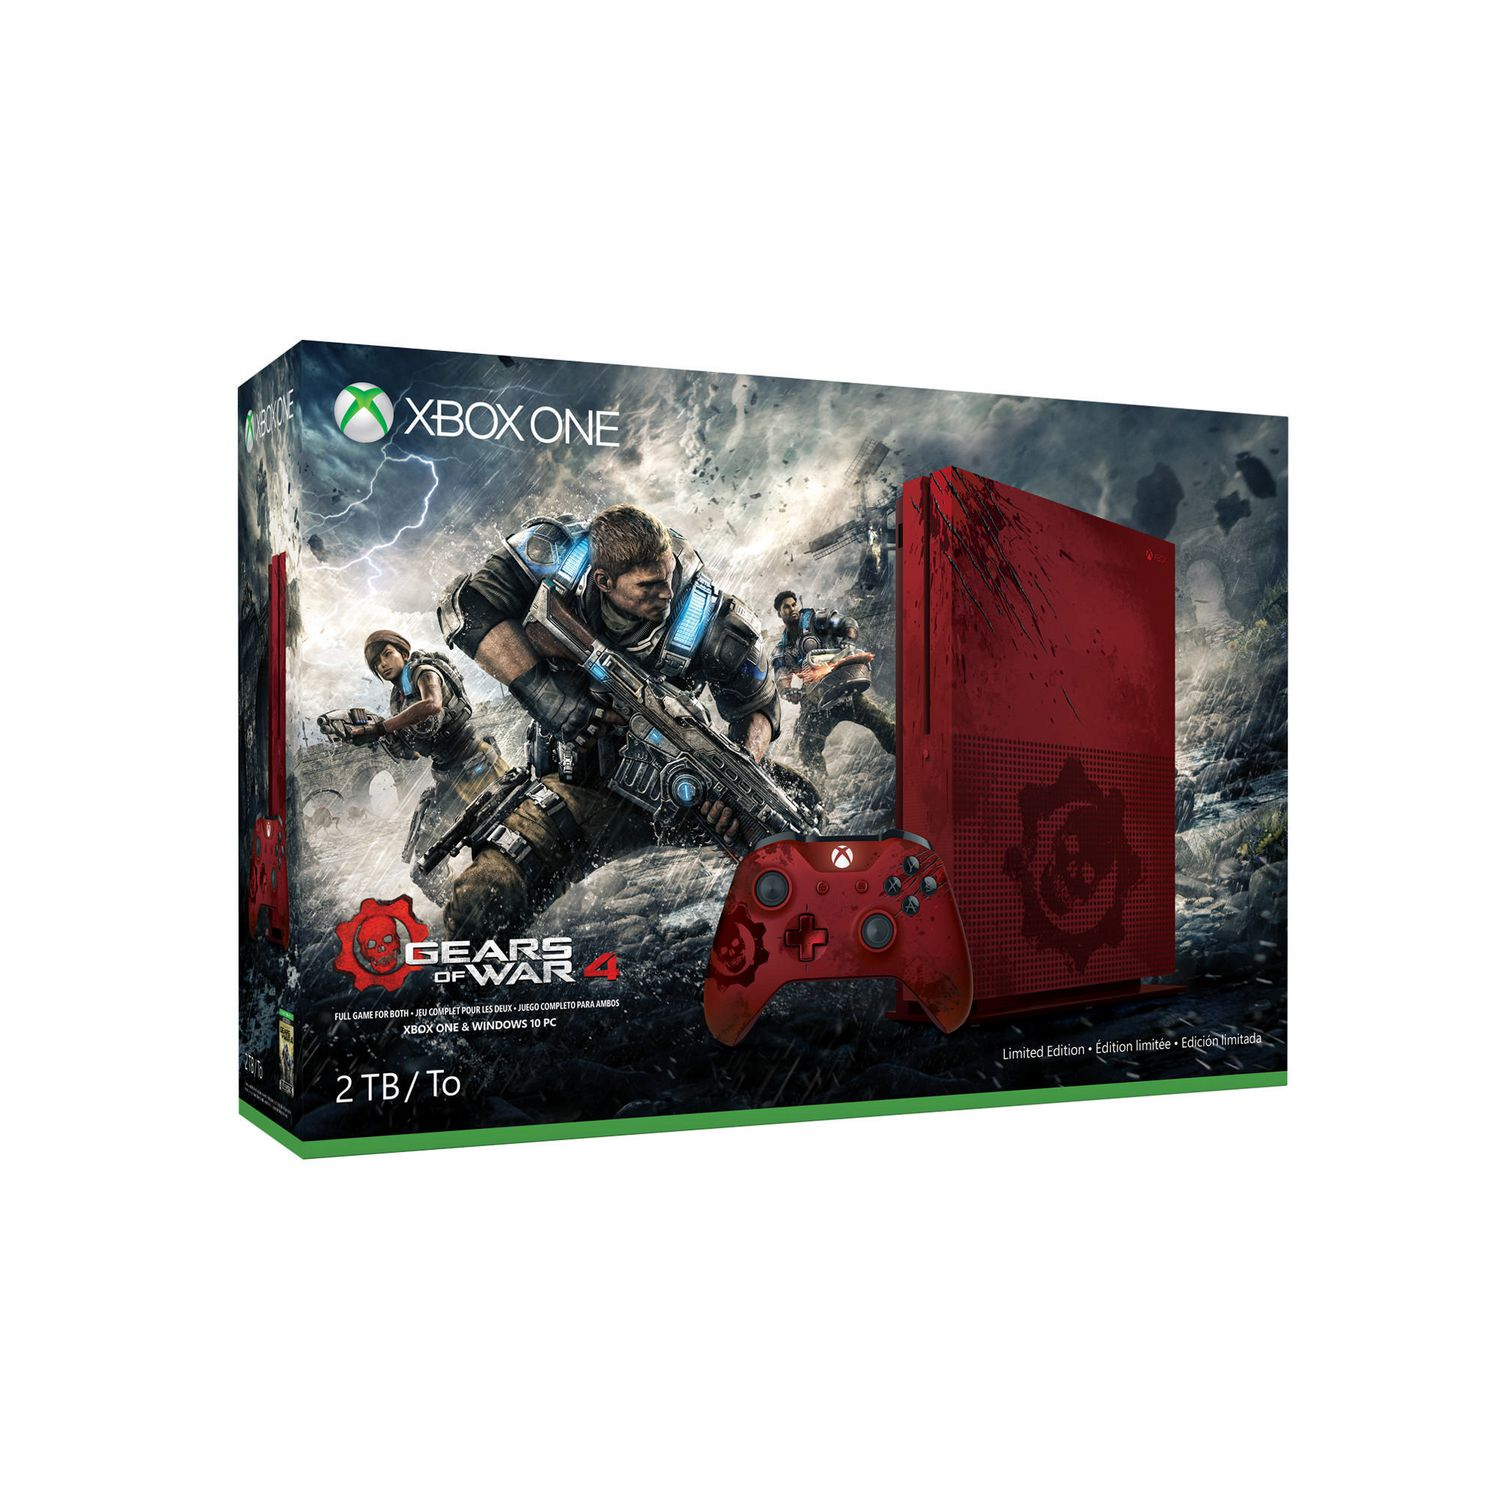 Game boy color quanto custa - Xbox One S 2tb Gears Of War 4 Limited Edition Bundle